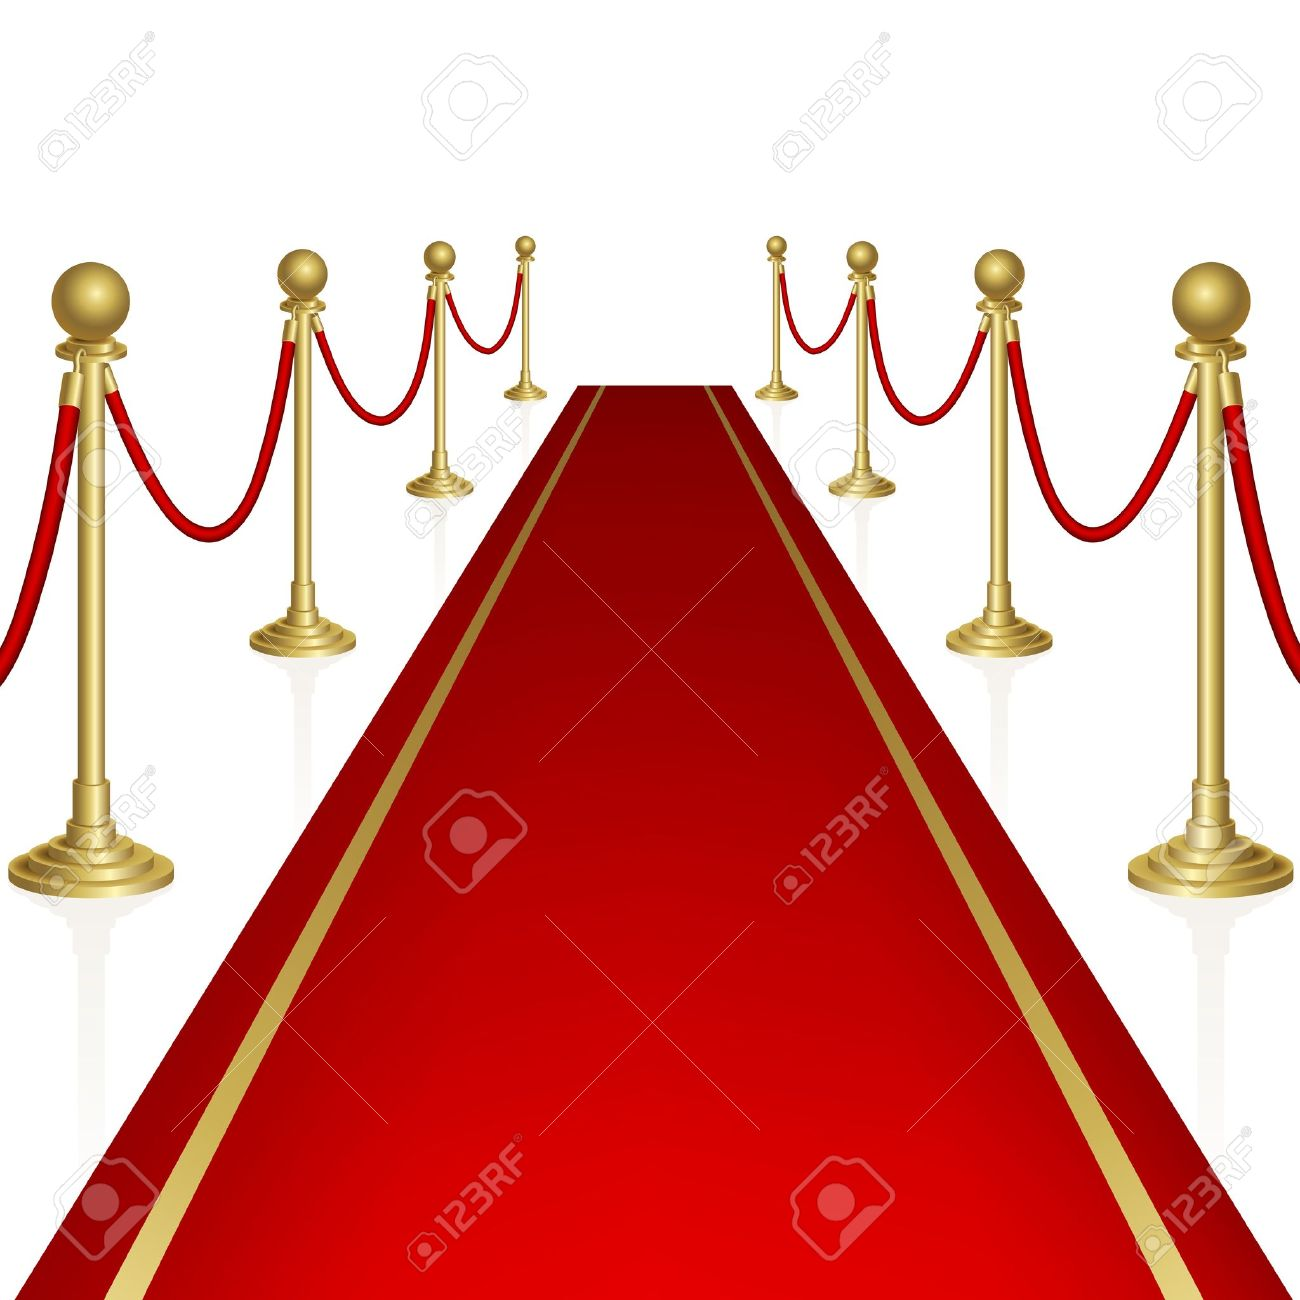 Red carpet with guard. - 16583436